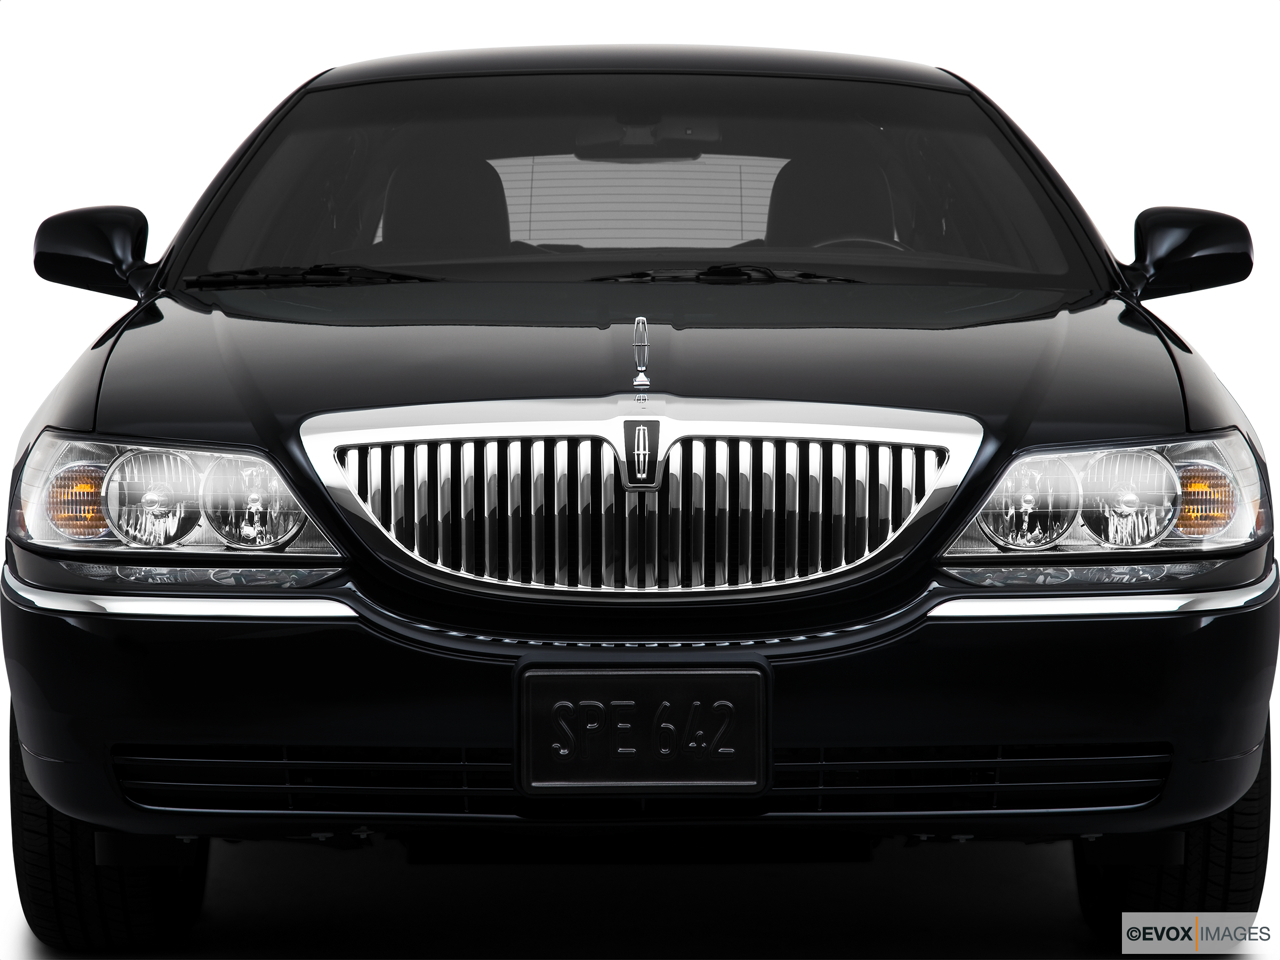 2010 Lincoln Town Car Signature L Close up of Grill.